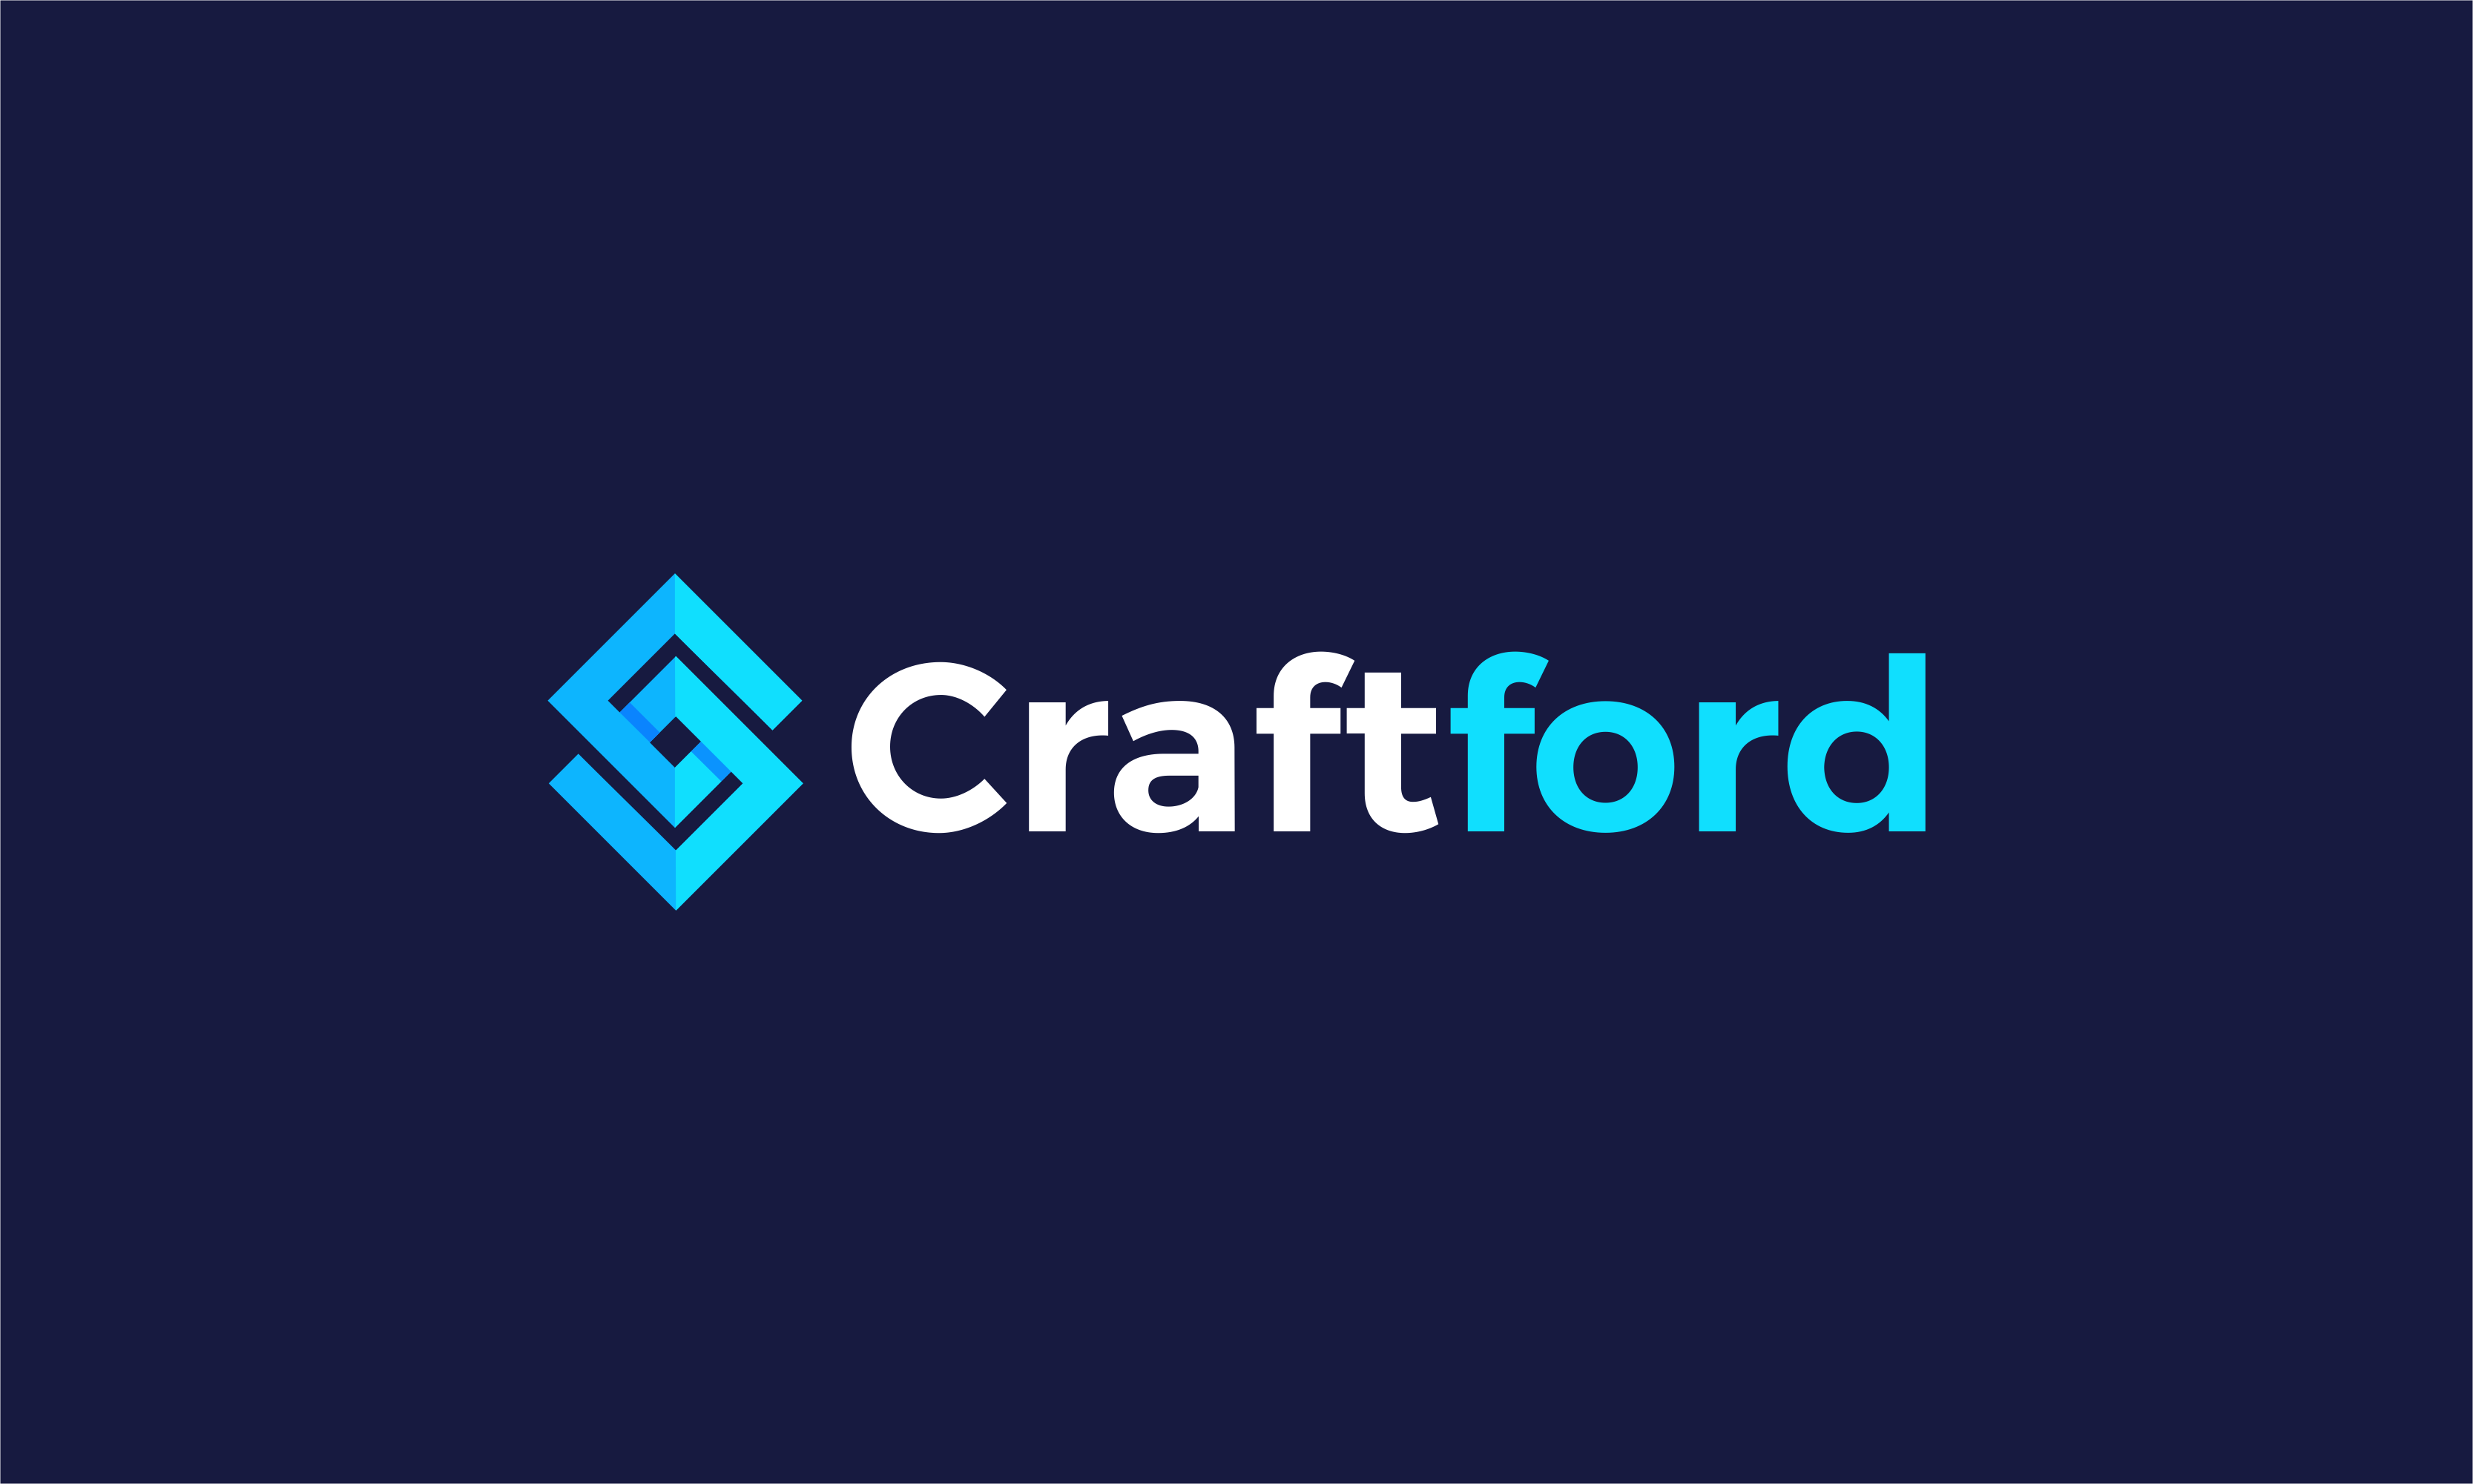 Craftford